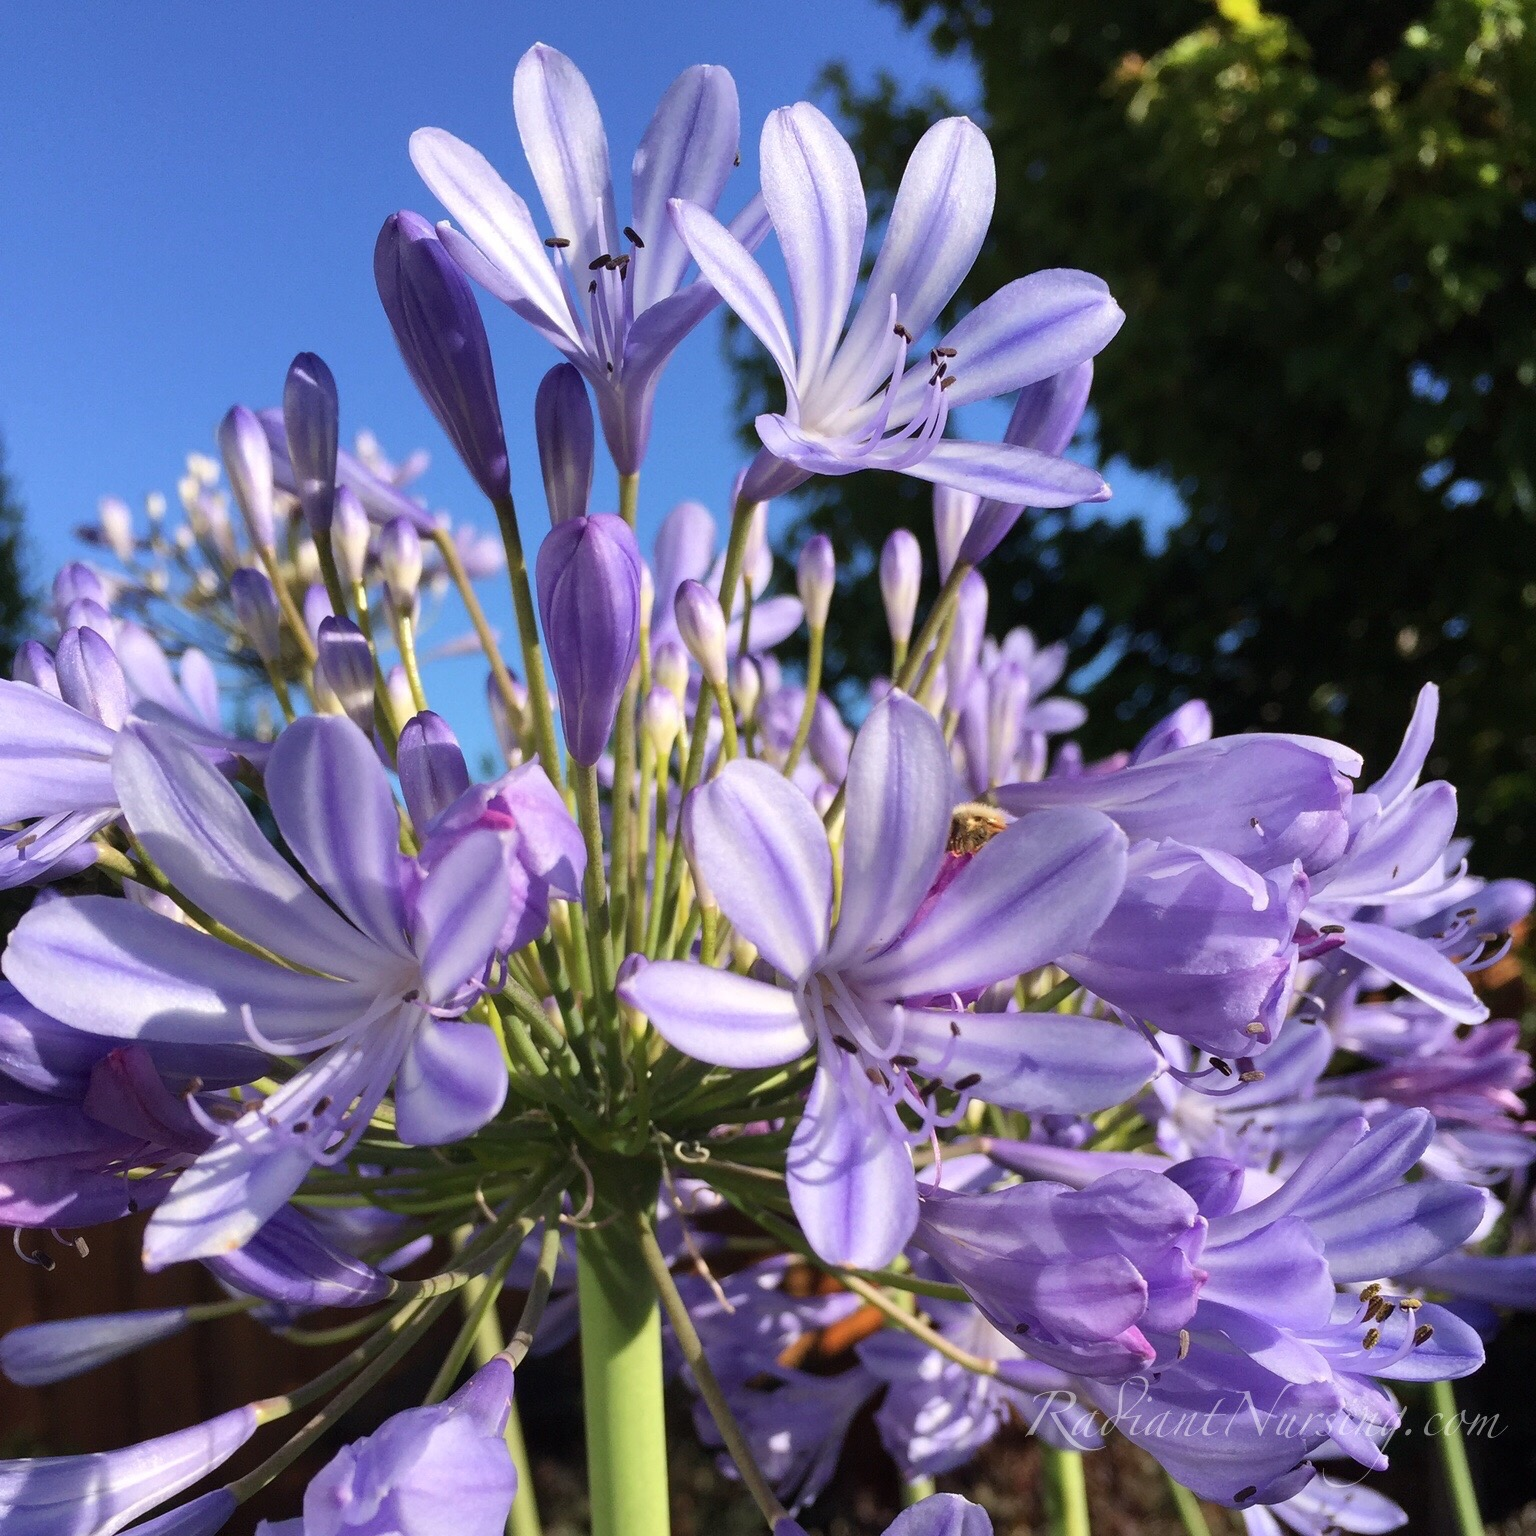 Agapanthus happily blooming.